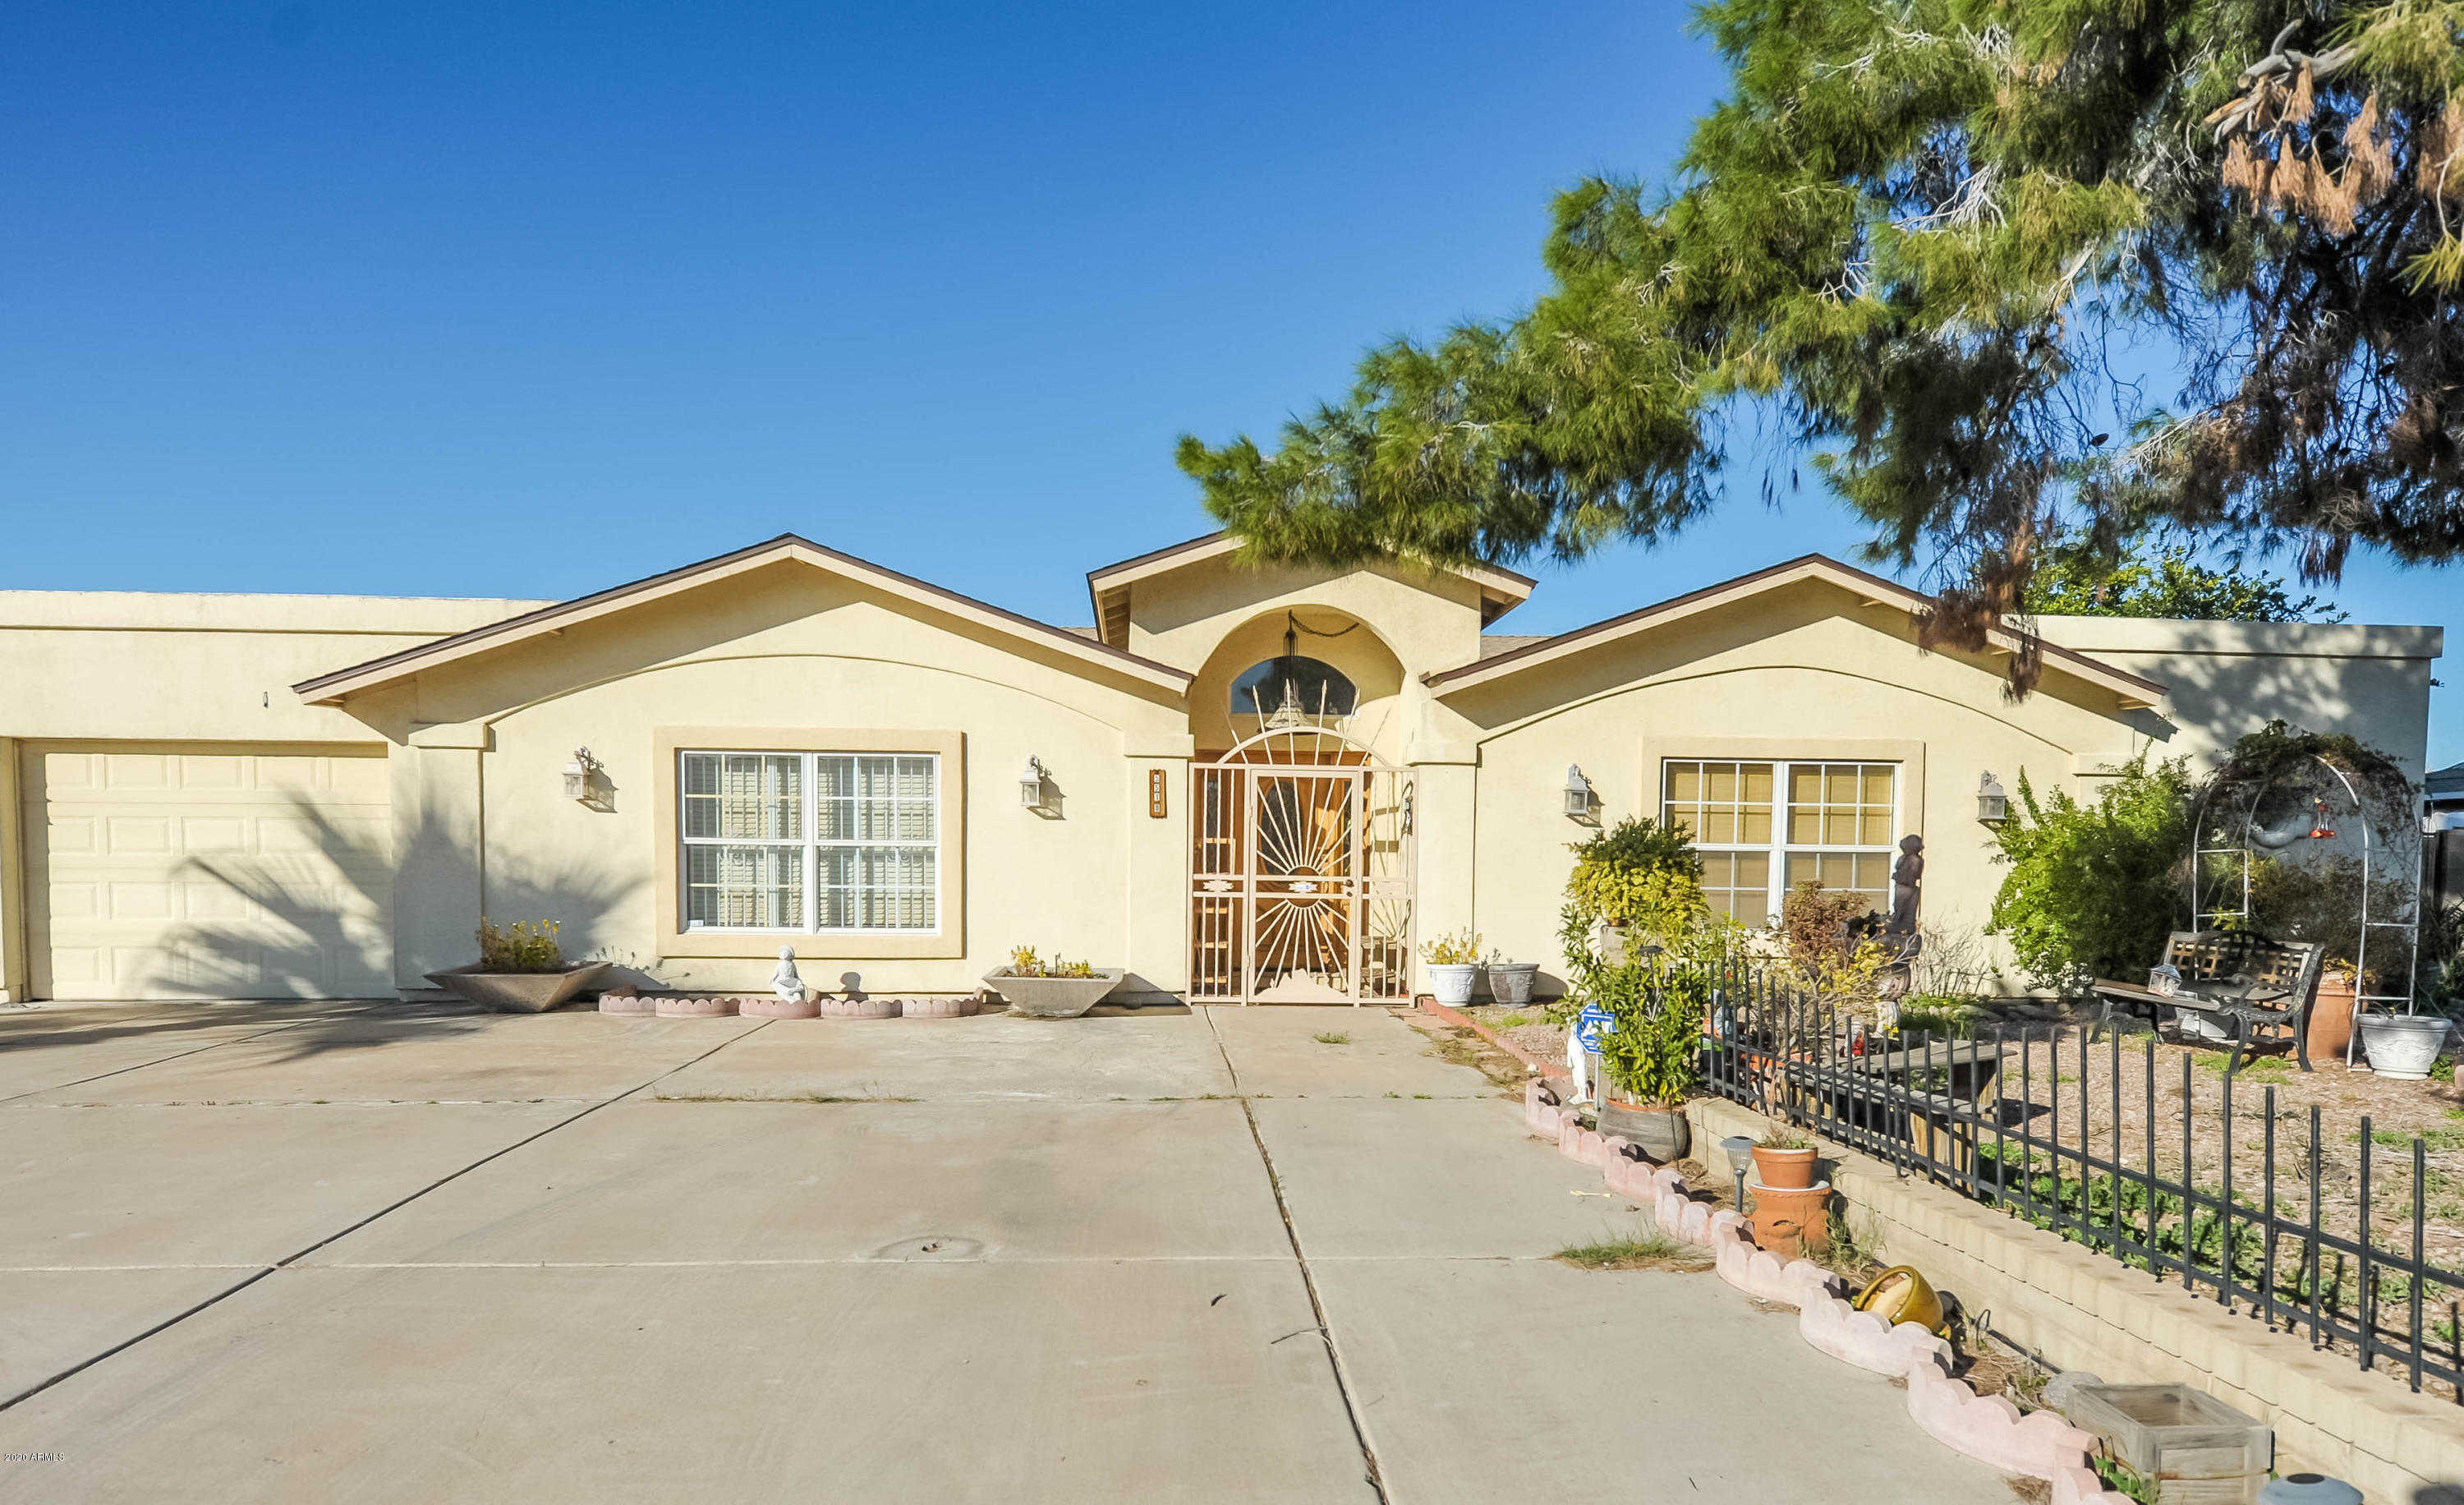 $495,000 - 4Br/3Ba - Home for Sale in Lot 927 Sunburst Farms 23 Mcr 0160029, Glendale